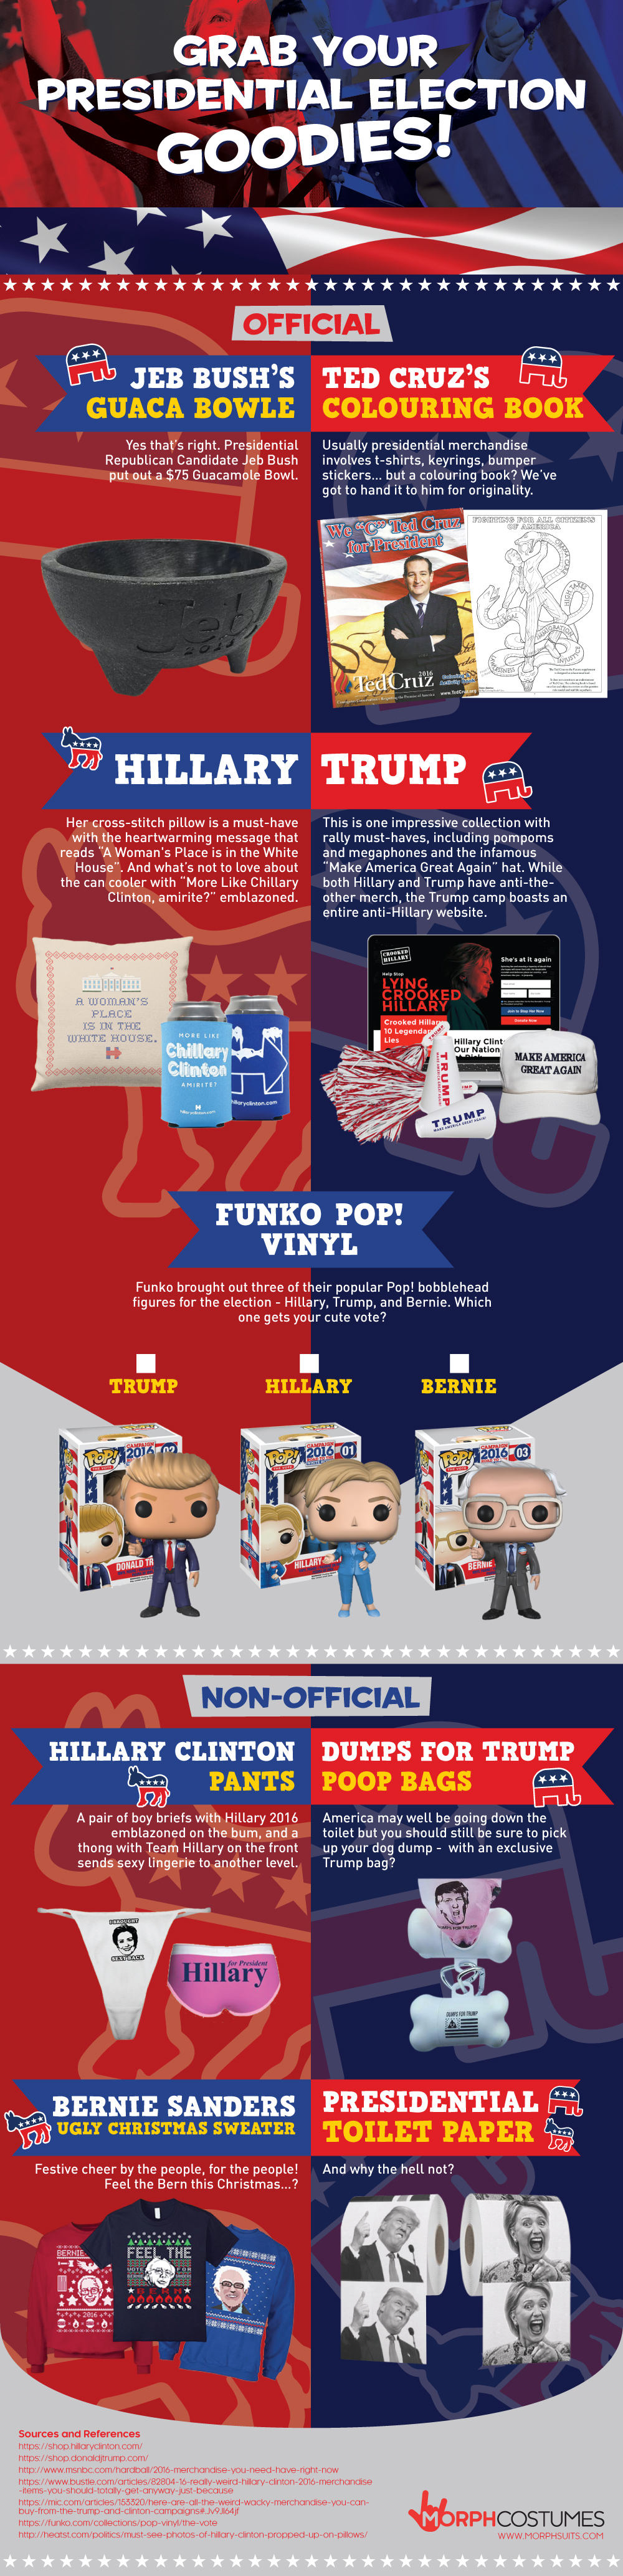 Grab your 2016 US Presidential Election Goodies!